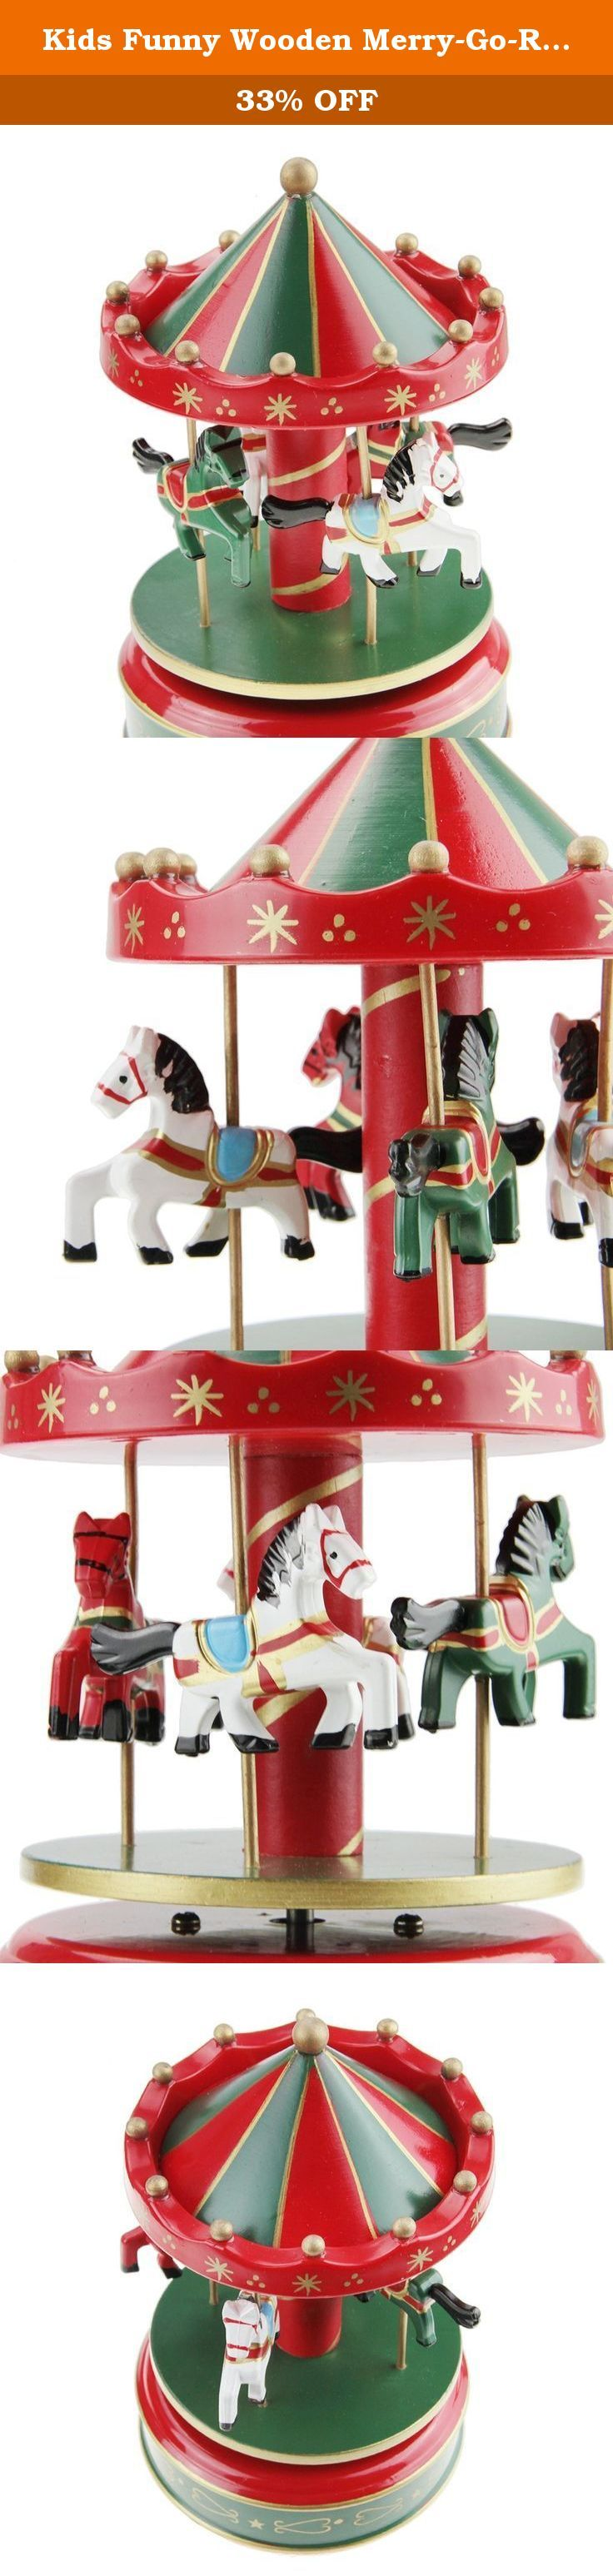 """Kids Funny Wooden Merry-Go-Round 4-Horse Rotate Carousel Music Box Toy Christmas Gift Red. Wooden Merry-Go-Round 4 Horses Rotating Music Box Christmas Birthday Gift Carousel Toy Please note: Greenery US shop provides a 90-day money back guarantee! So just take it easy when you purchase our products. For more products in our shop, you can search """"Greenery US"""" on Amazon website. Thanks! Why buy from us ??? *7*24 Tech. Support! *100% Satisfaction Guaranteed! *More considerate services! *More..."""